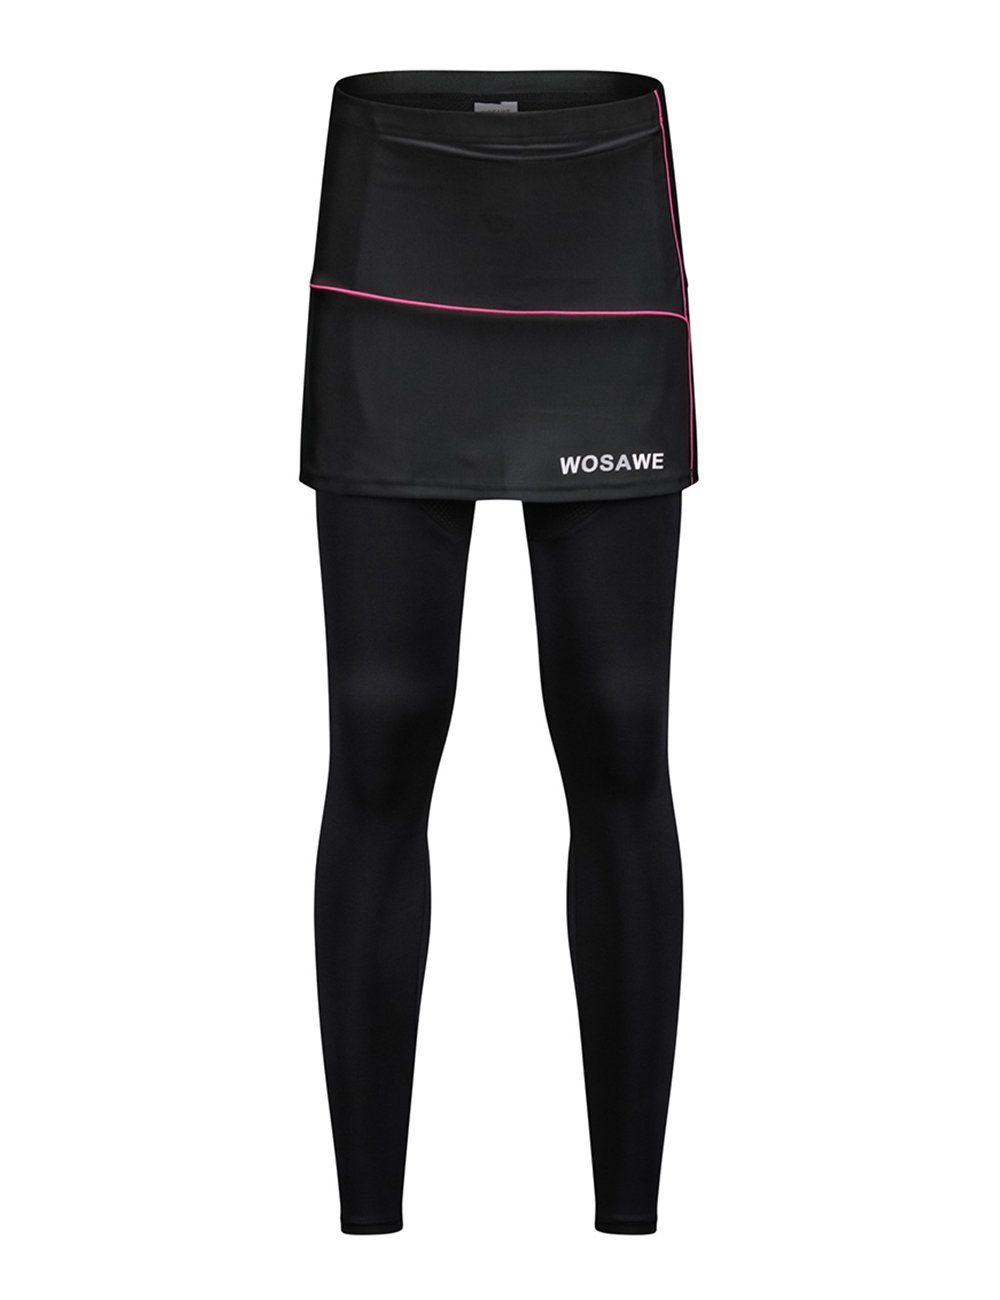 WOSAWE Women's Cycling Skirted Pants Bicycle Skort with Compression Leggings, M Black by WOSAWE